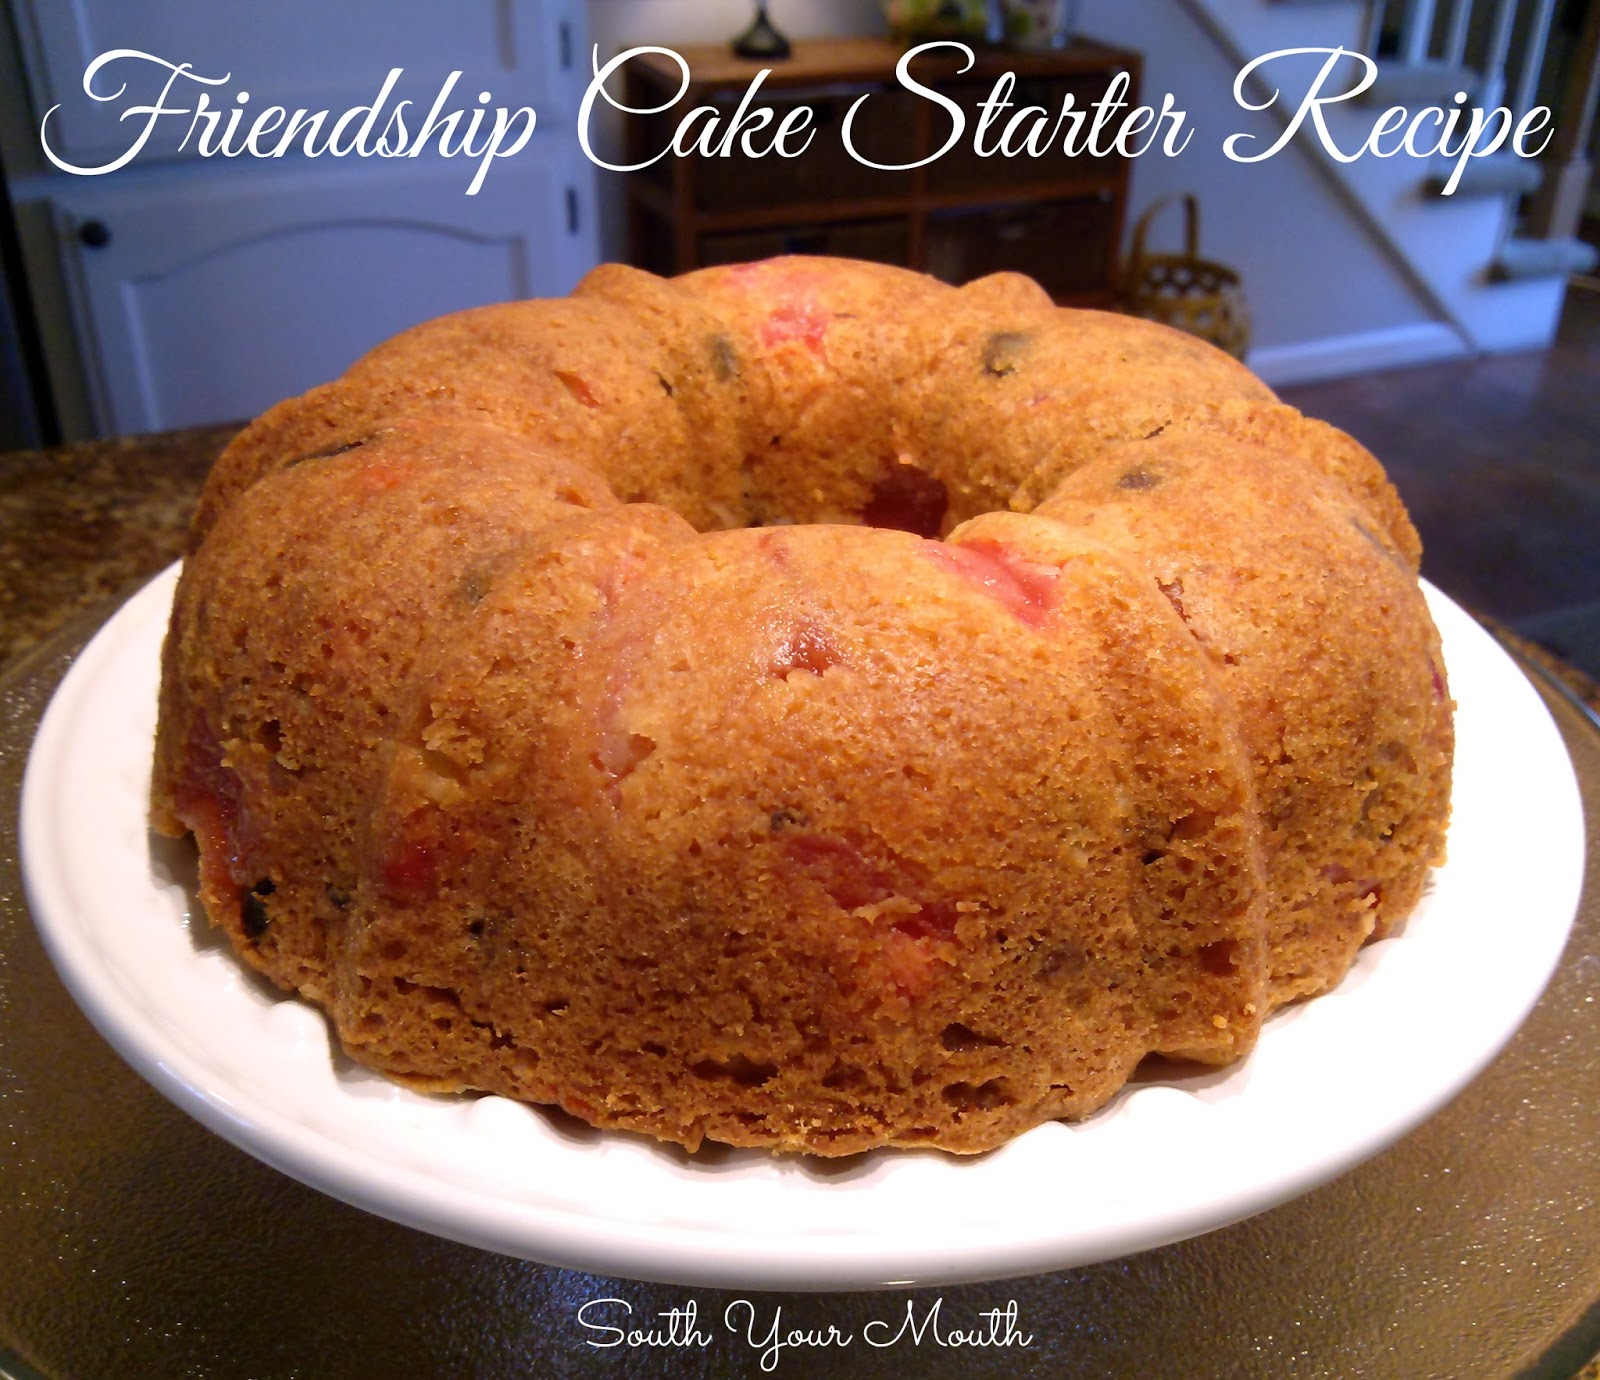 Friendship Cake Fruit Starter